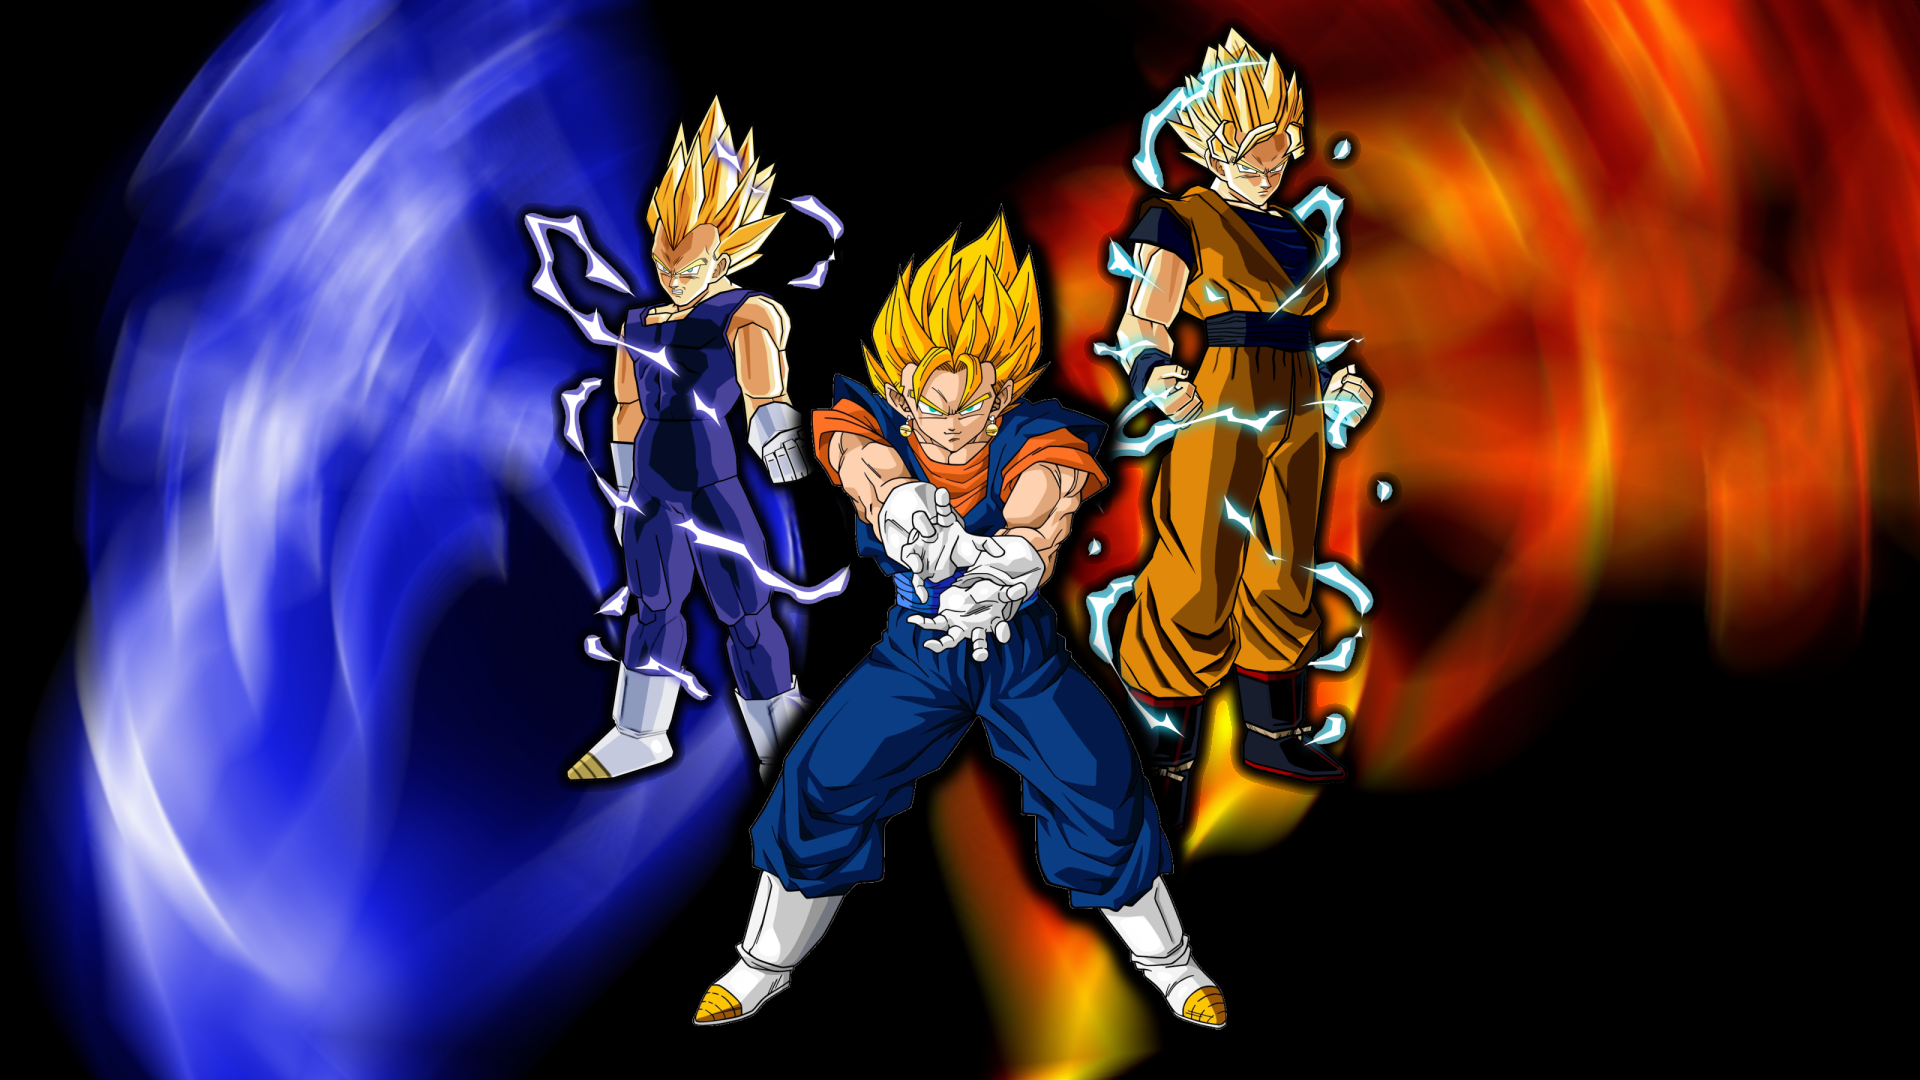 Vegeta 4k wallpapers for your desktop or mobile screen - Vegeta wallpapers for mobile ...